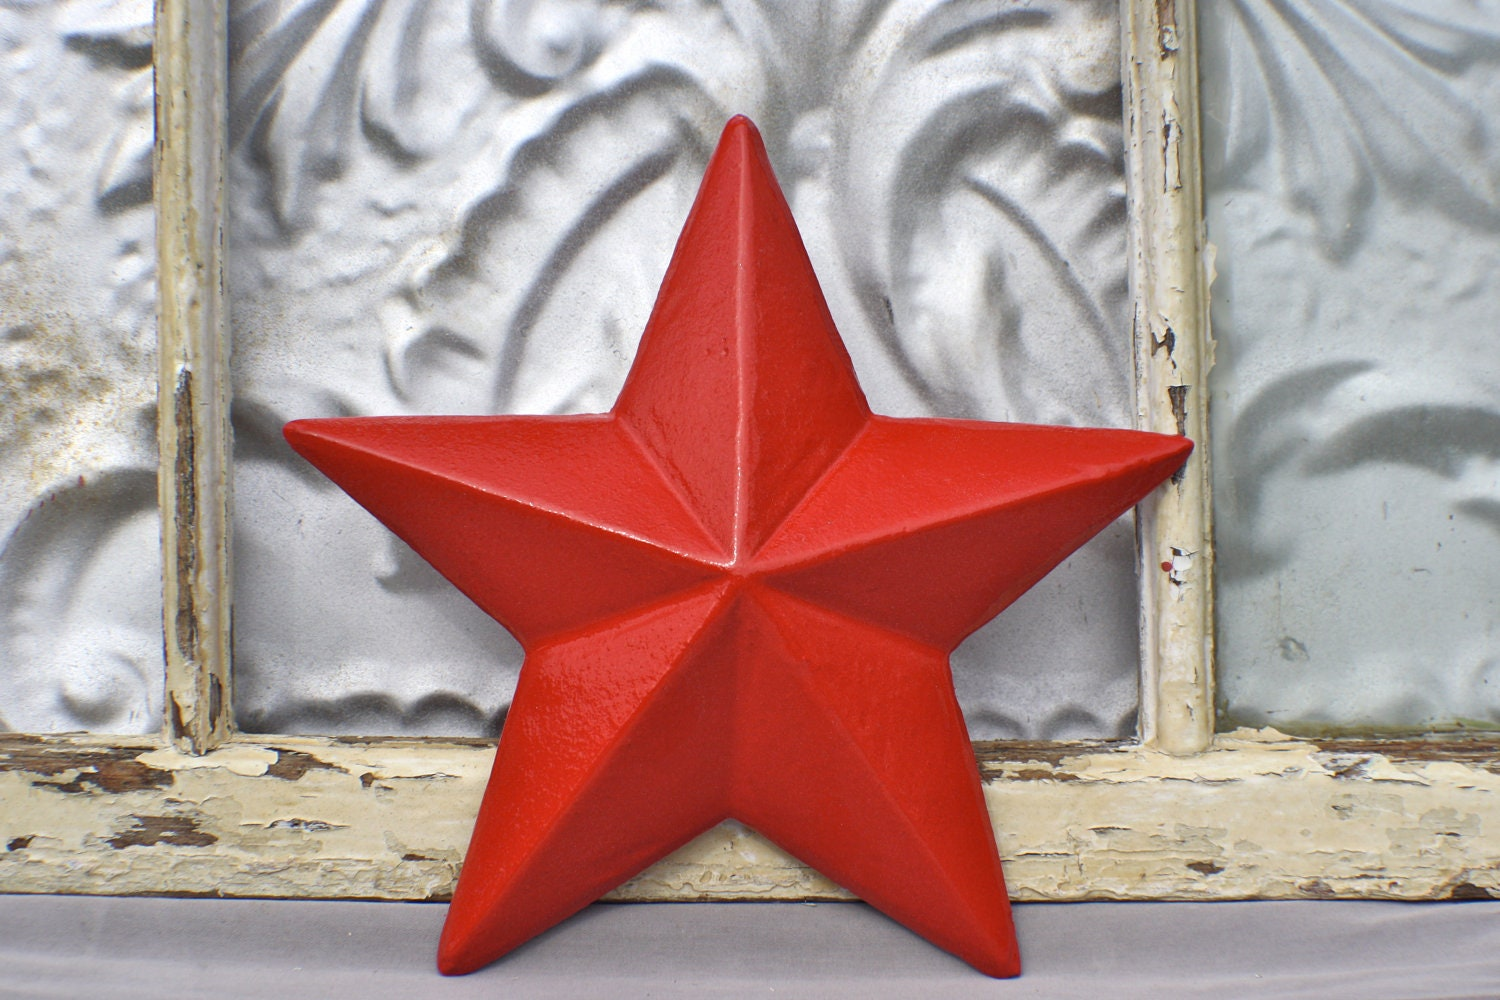 Popular items for star wall decor on Etsy